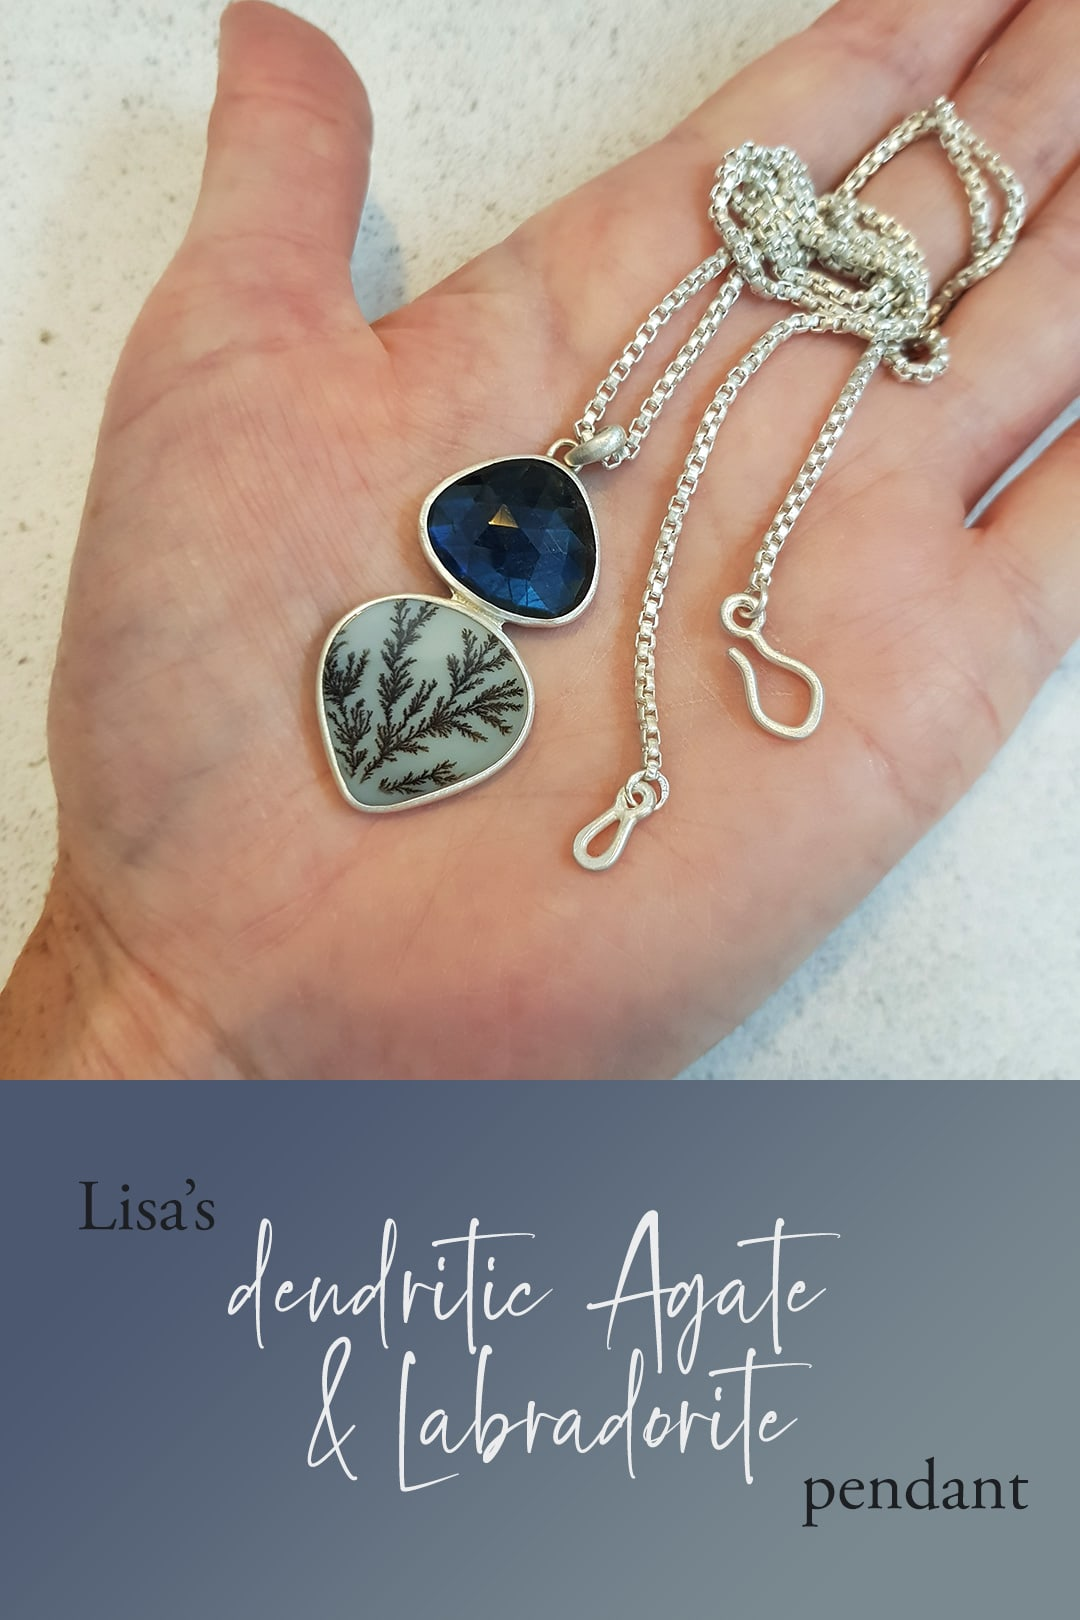 Lisa's dendritic agate and labradorite pendant